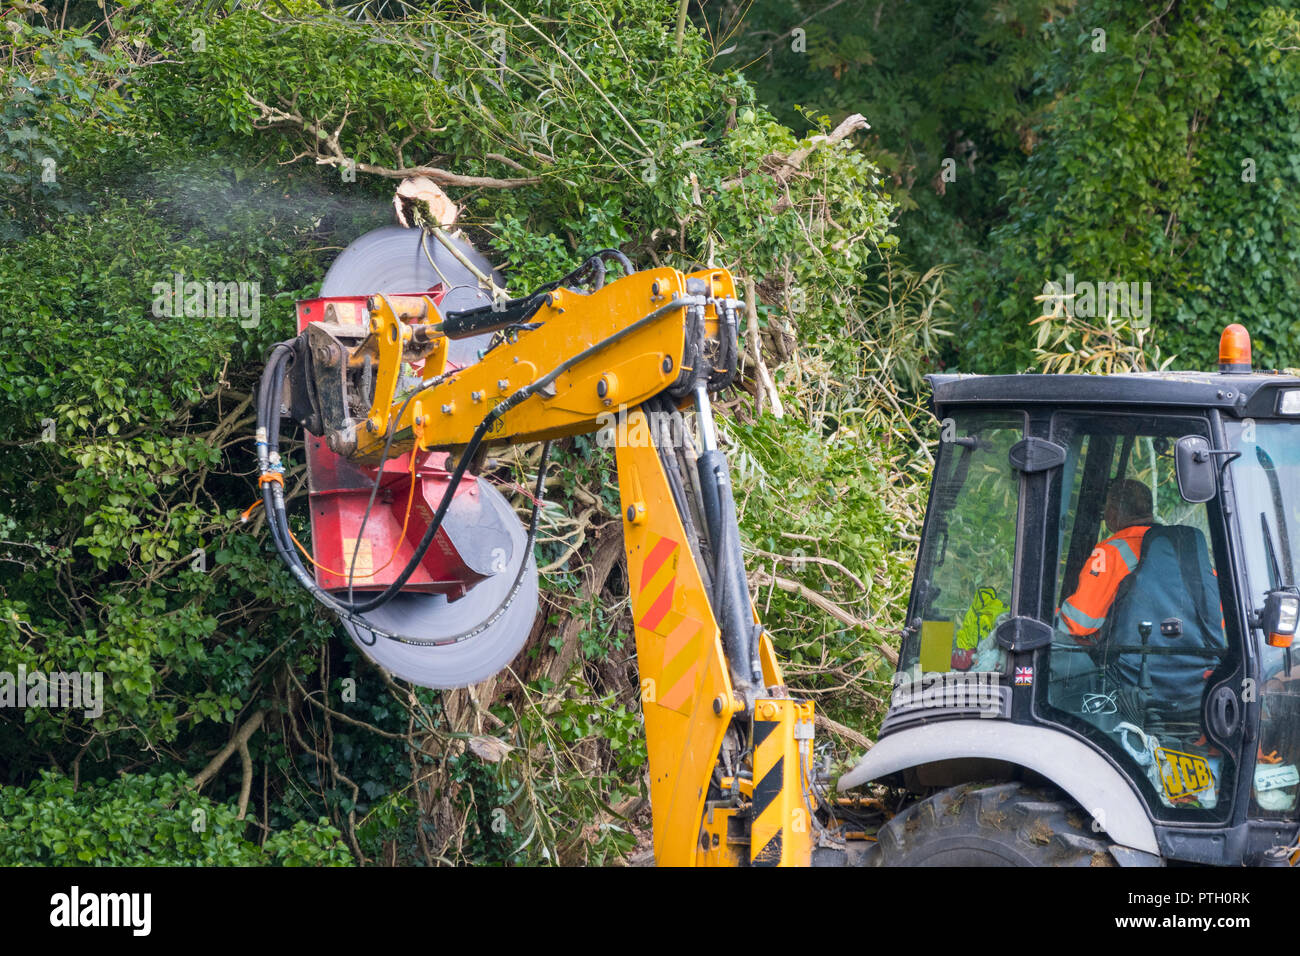 Protech PB2000 (Powerblade 2000) double rotating saw fitted to a tractor, cutting trees in woodland in Autum in the UK. - Stock Image